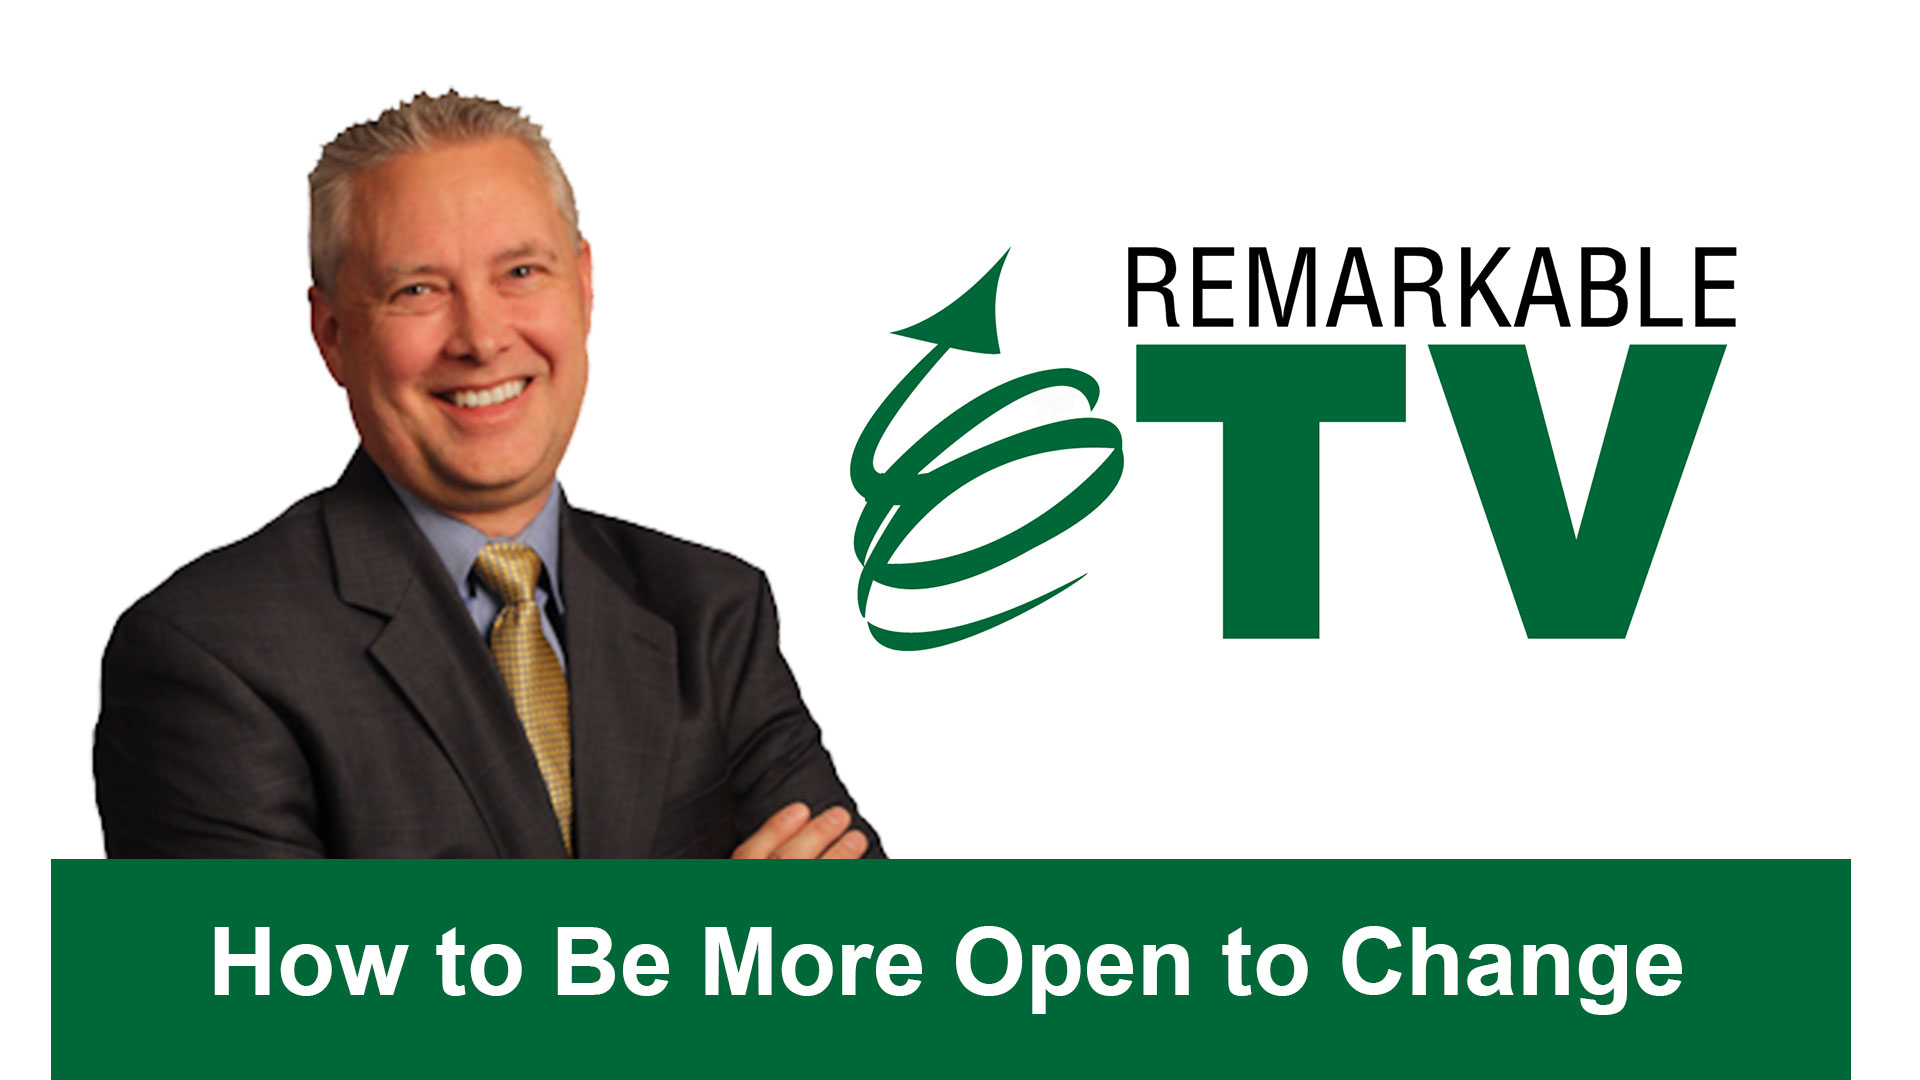 Remarkable TV: Be More Open to Change